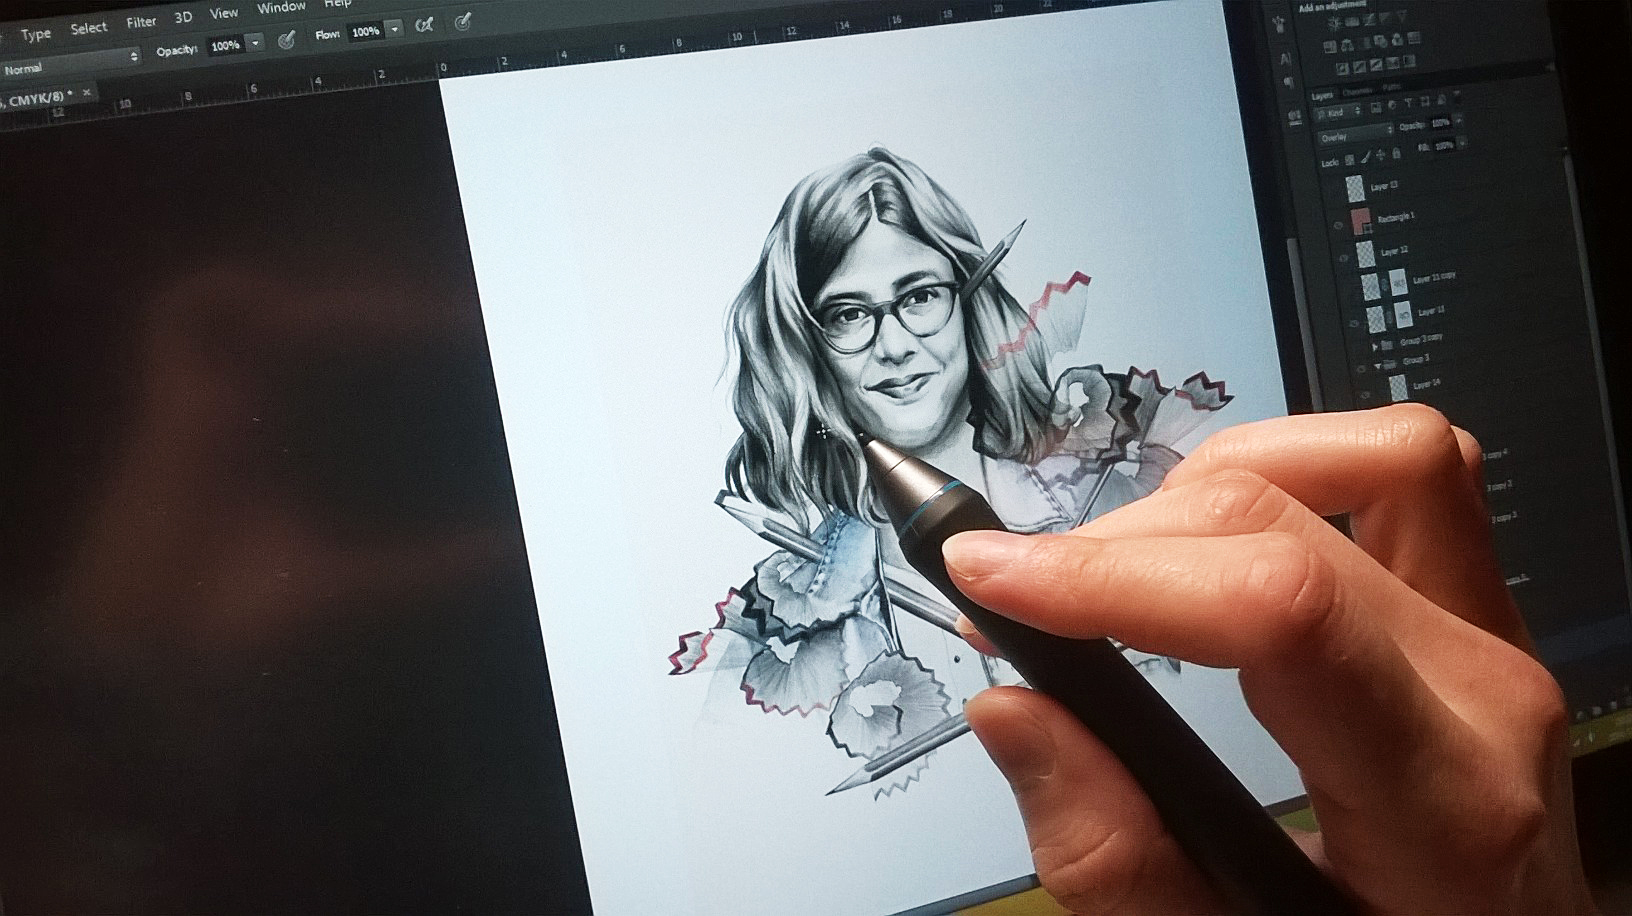 Illustrator at Work